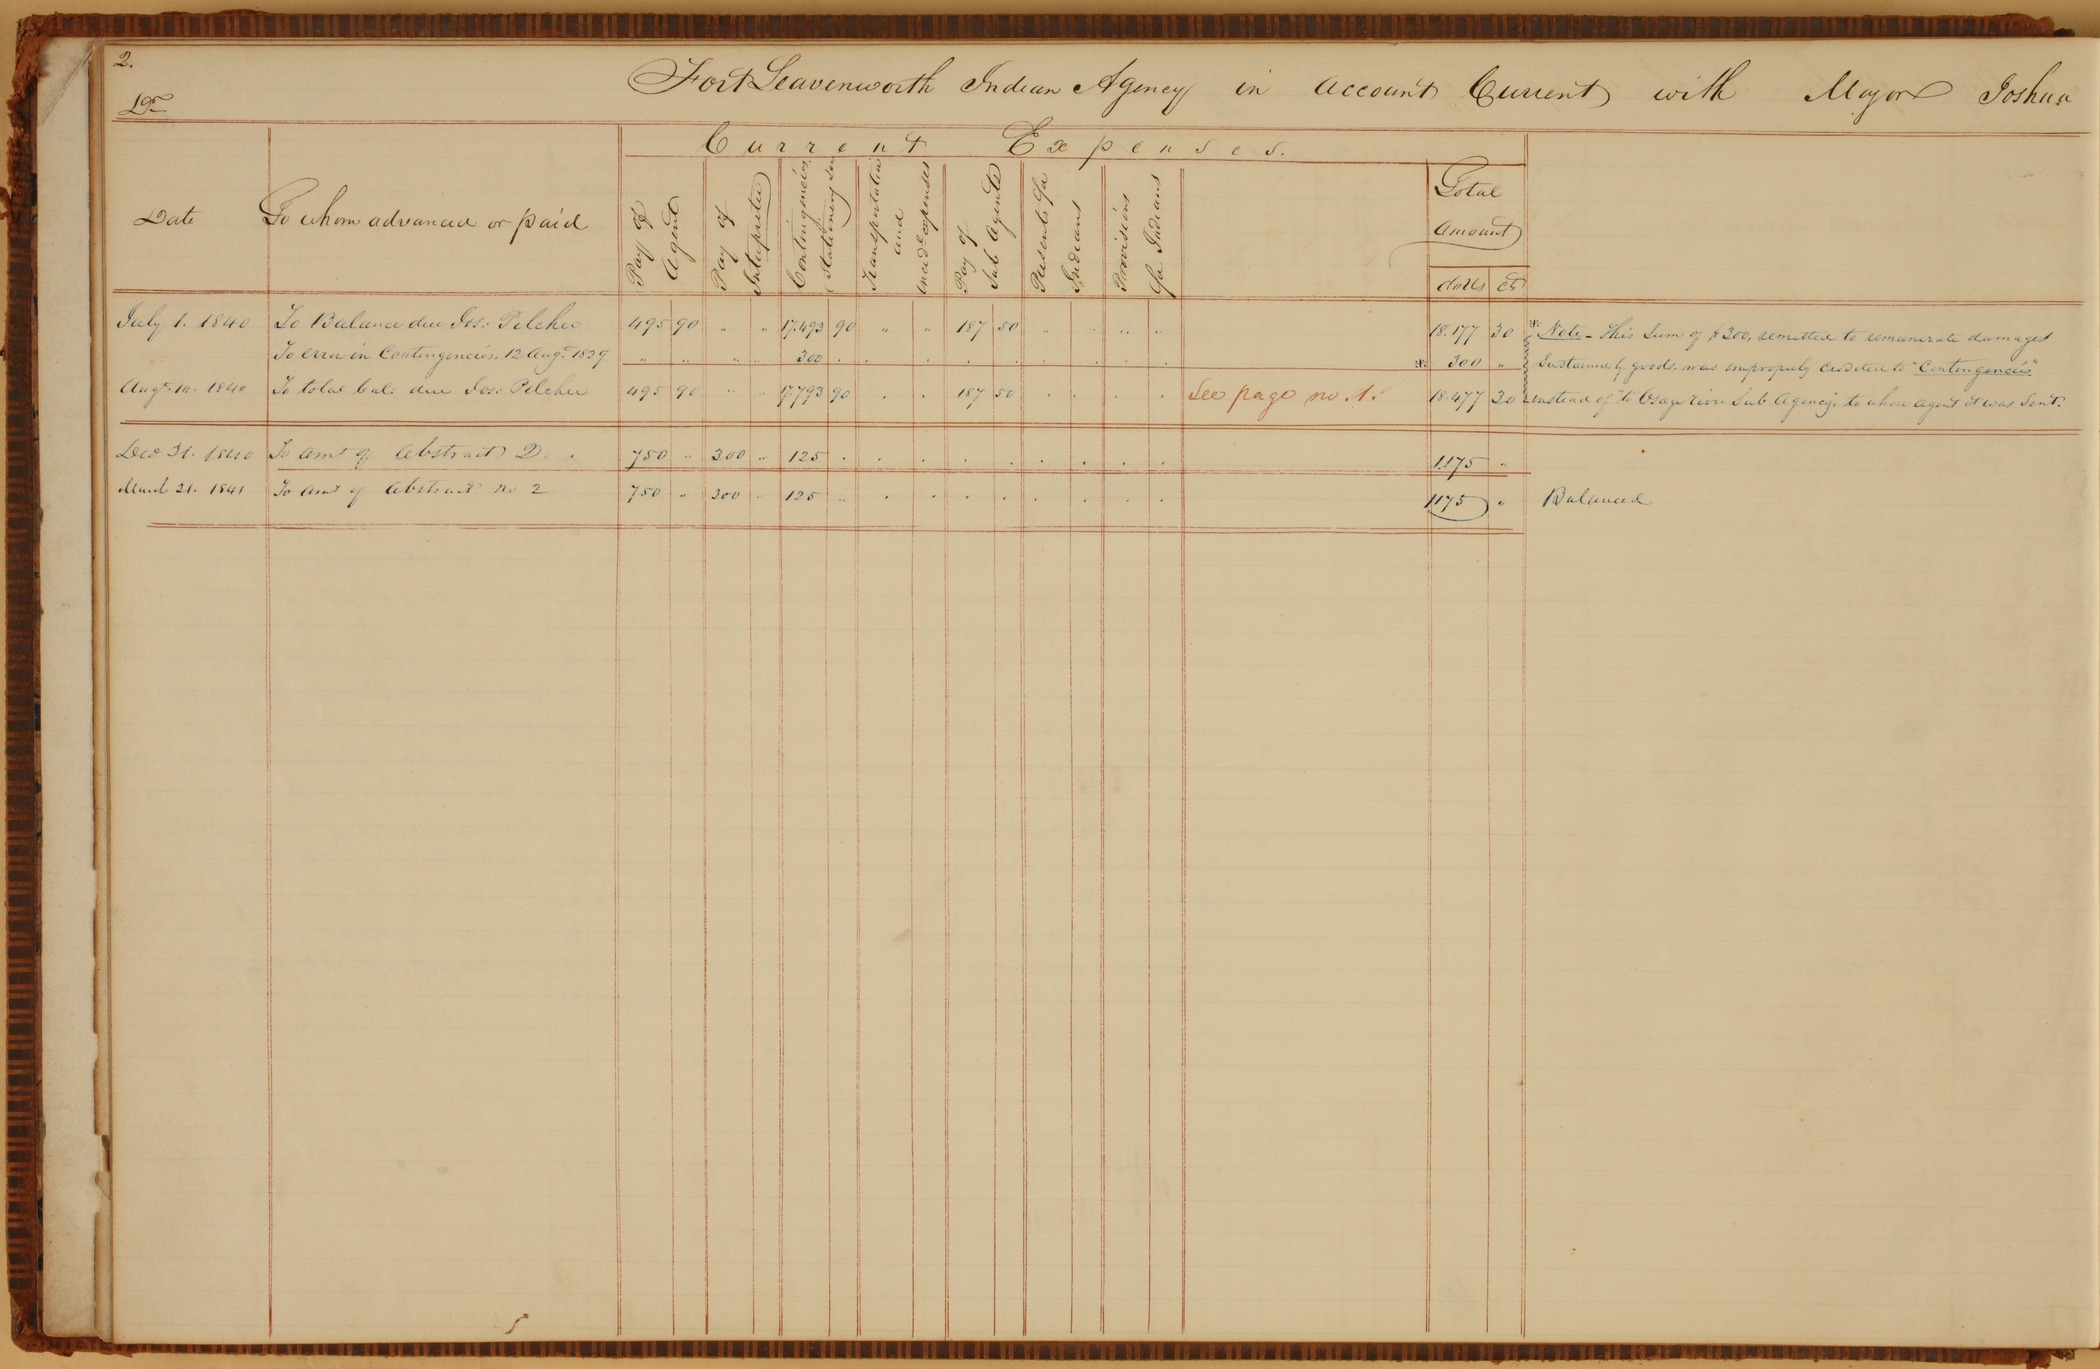 United States Office of Indian Affairs, Central Superintendency, St. Louis, Missouri. Volume 13, Accounts - Page 2